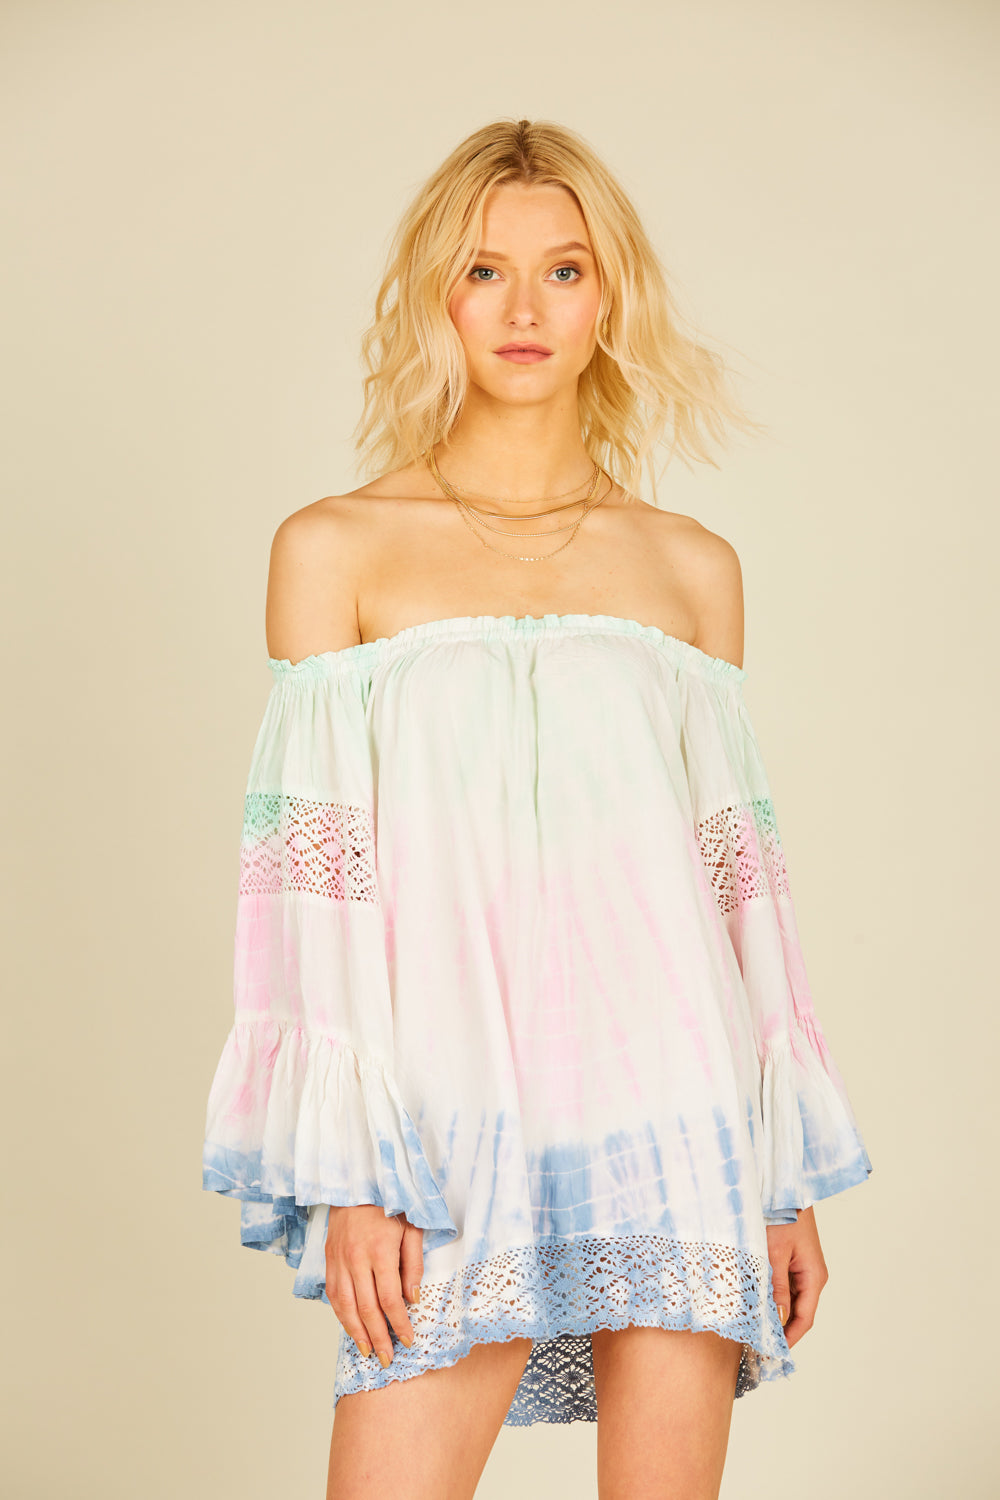 Soft Mint, Pink & Blue Tie Dye Crochet Coverup